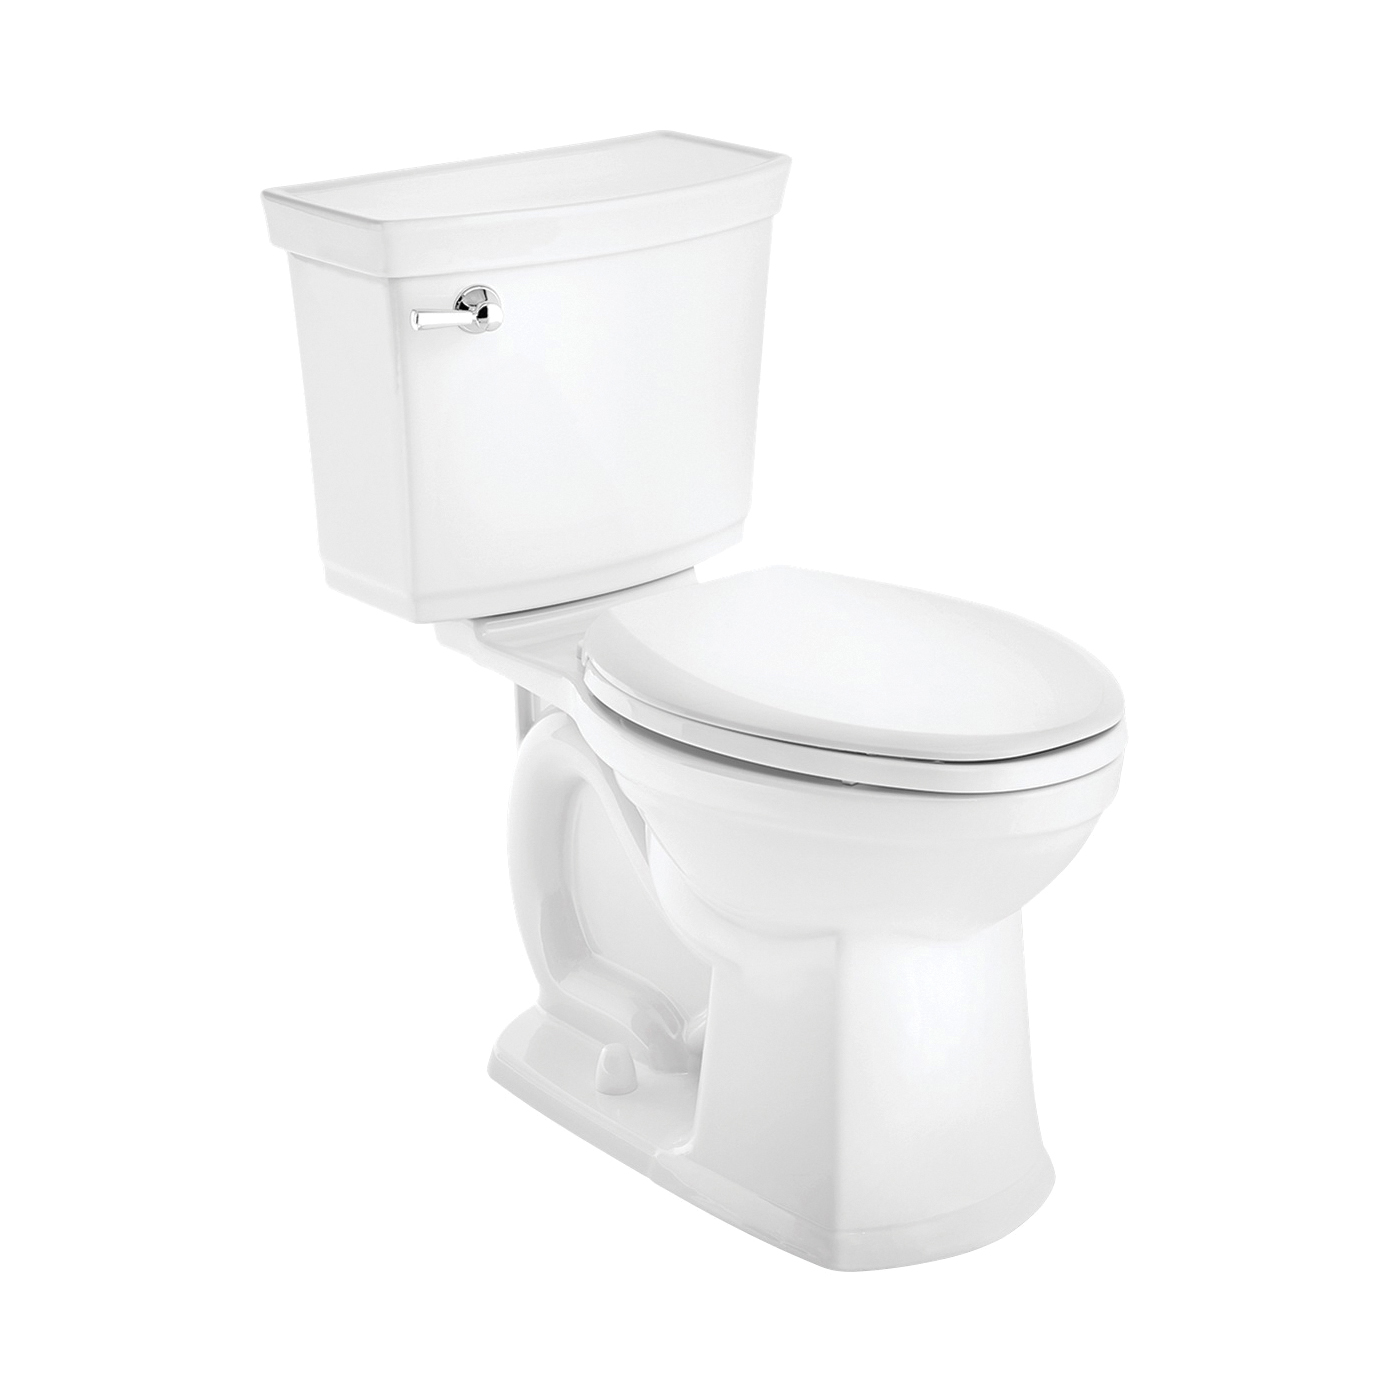 Picture of American Standard VorMax Series 727AA121.020 Complete Toilet, Elongated Bowl, 1.28 gpf Flush, 12 in Rough-In, White